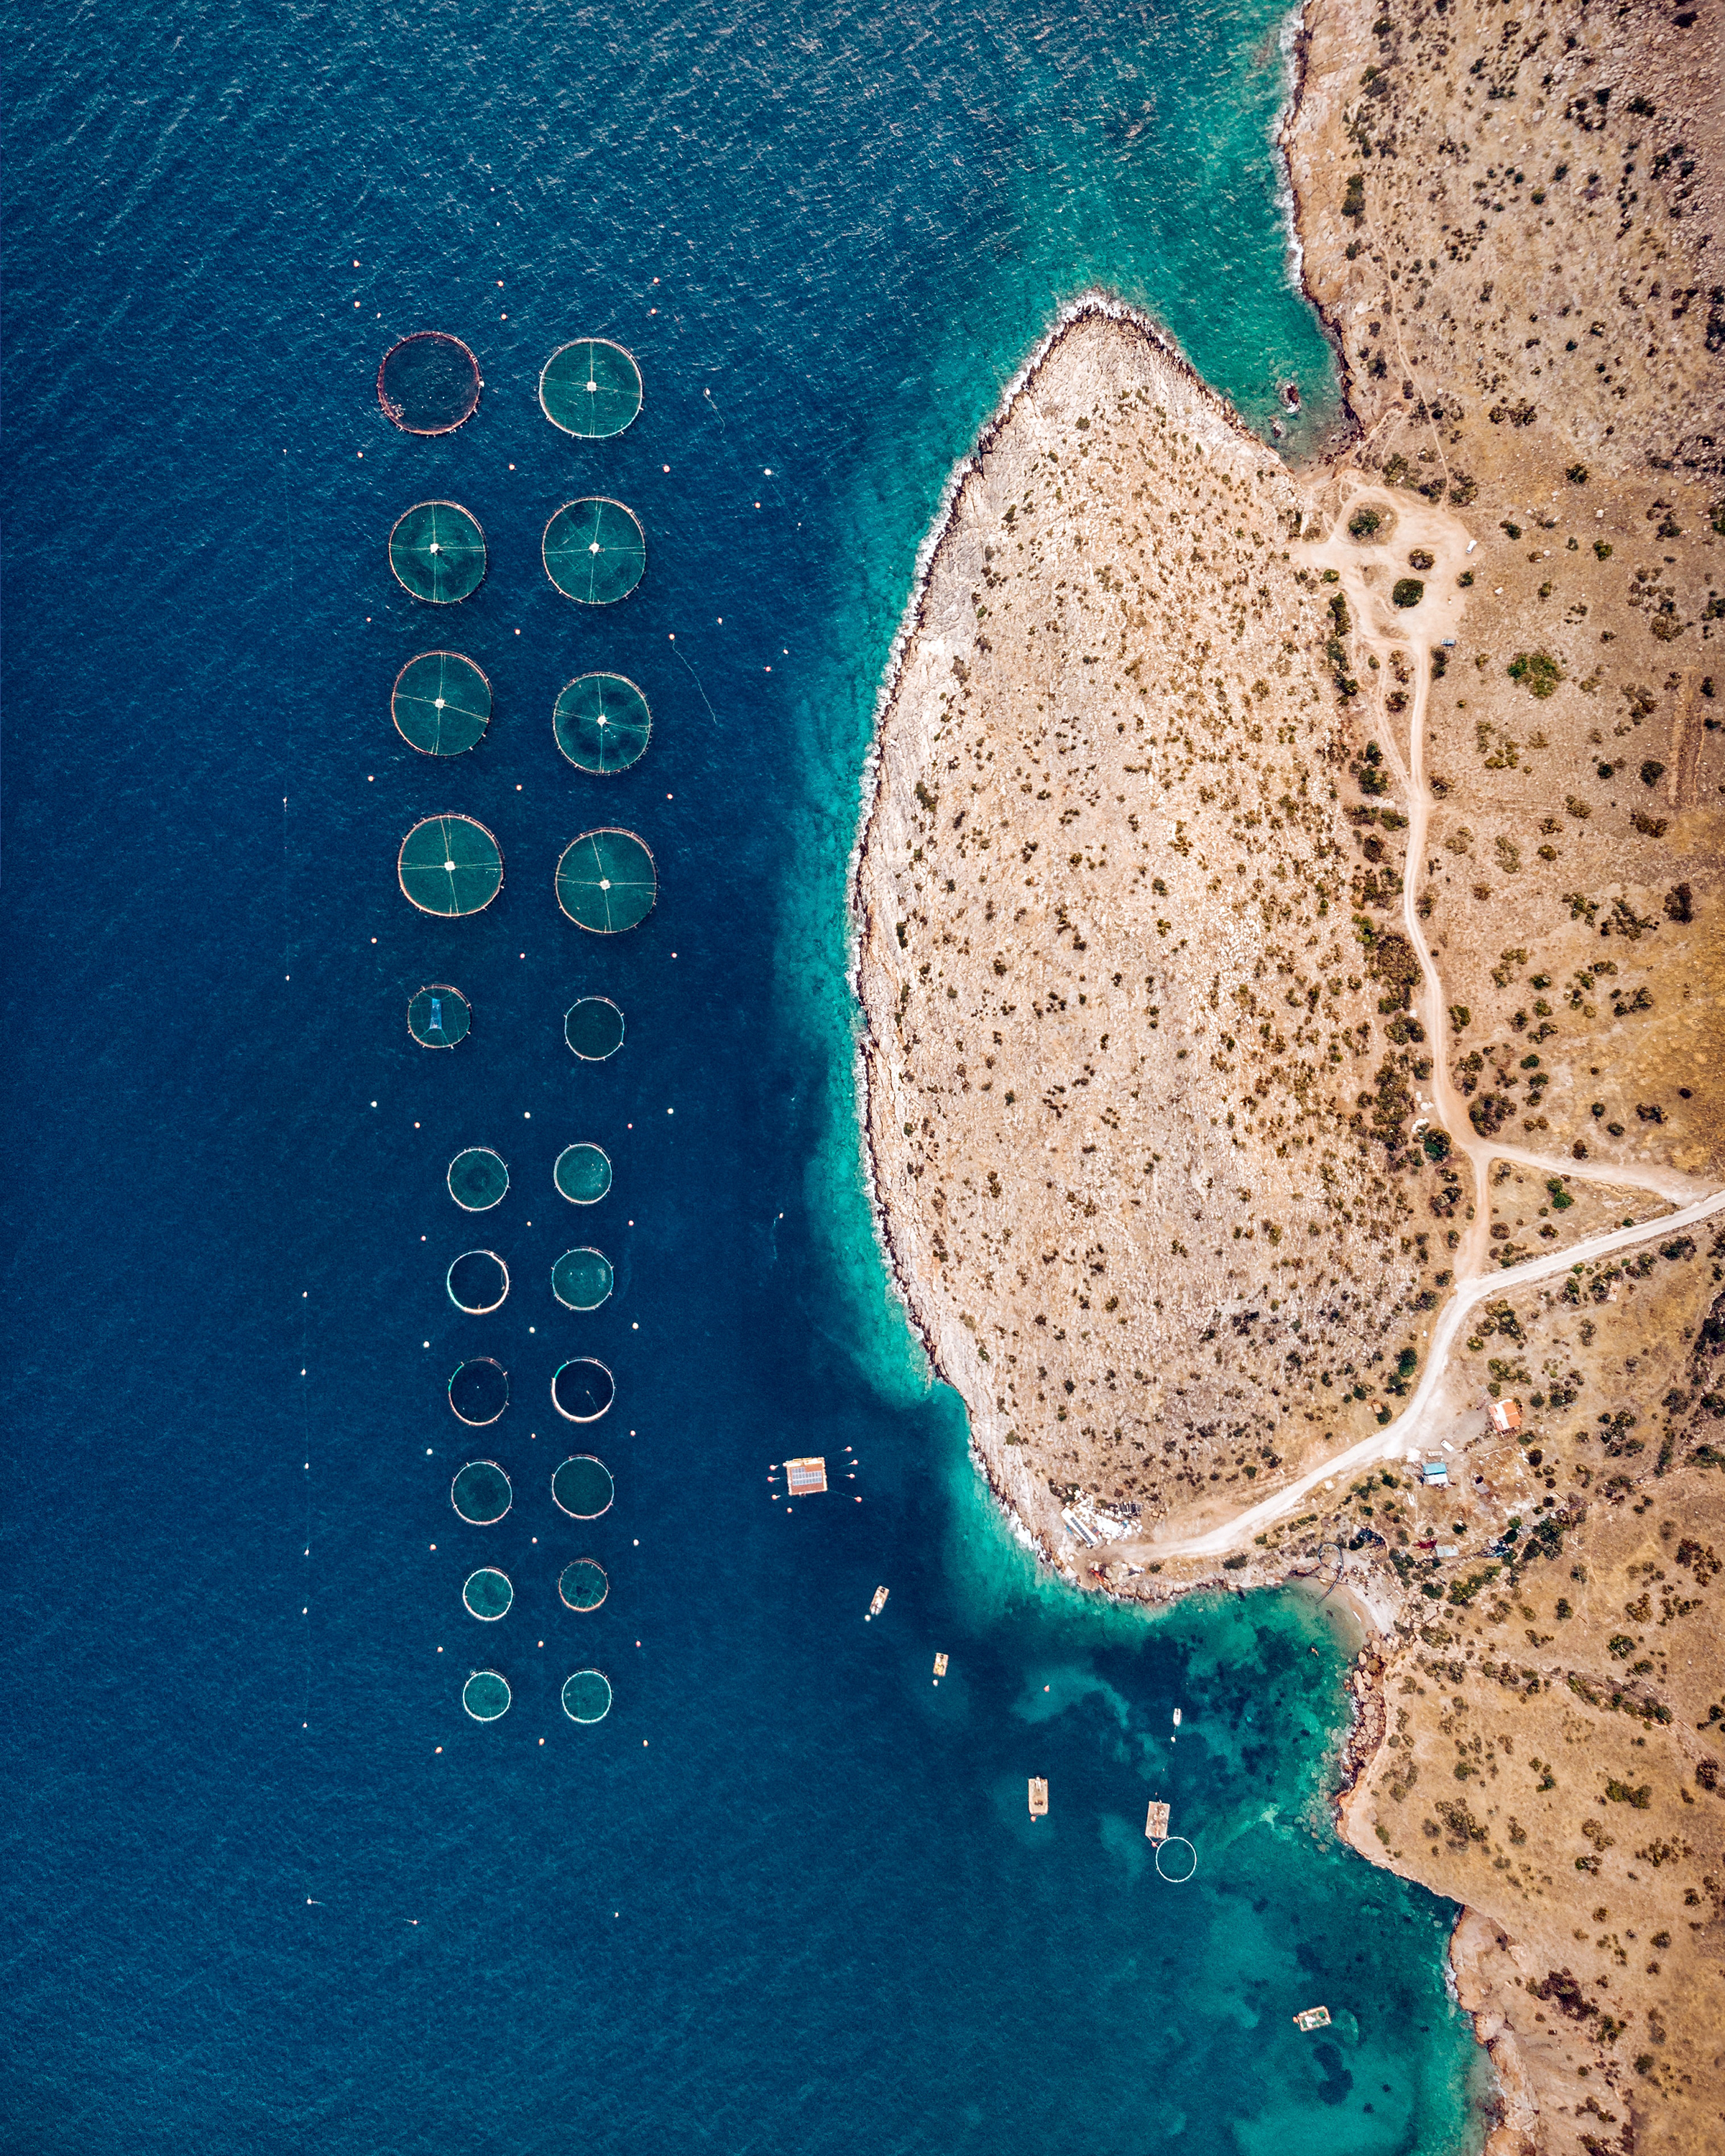 A fish farming operation is seen here in the Saronic Gulf, just offshore Greece's Attica Peninsula. Fish farming — or pisciculture — involves raising fish in tanks or enclosures, usually for food. In 2015, Greece had at least 300 of these farms and raised more than 242 million pounds (109 million kg) of fish and mussels.  37.669464°, 23.945770°  Source imagery: Zizanius